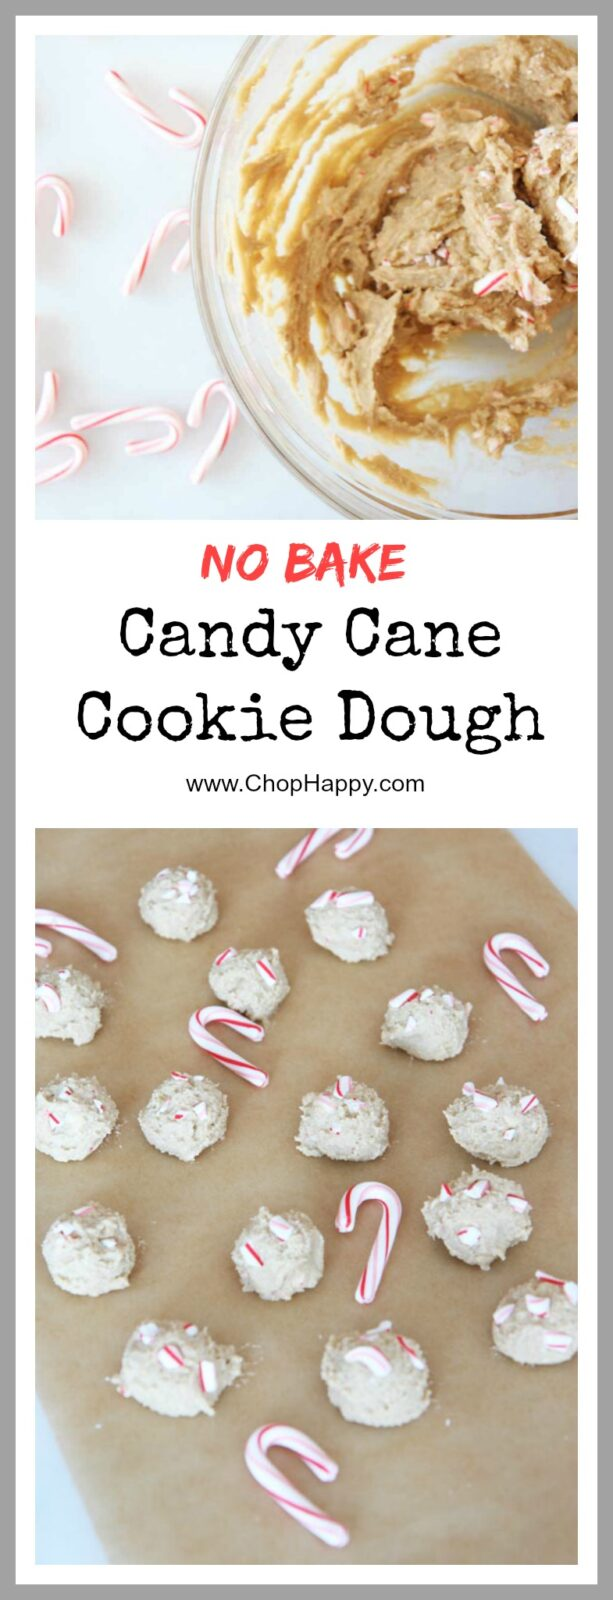 Candy Cane Cookie Dough Recipe - that is a no bake, make ahead, easy dessert. This is perfect for cookie exchange or just as a fun dessert at your holiday party. www.ChopHappy.com